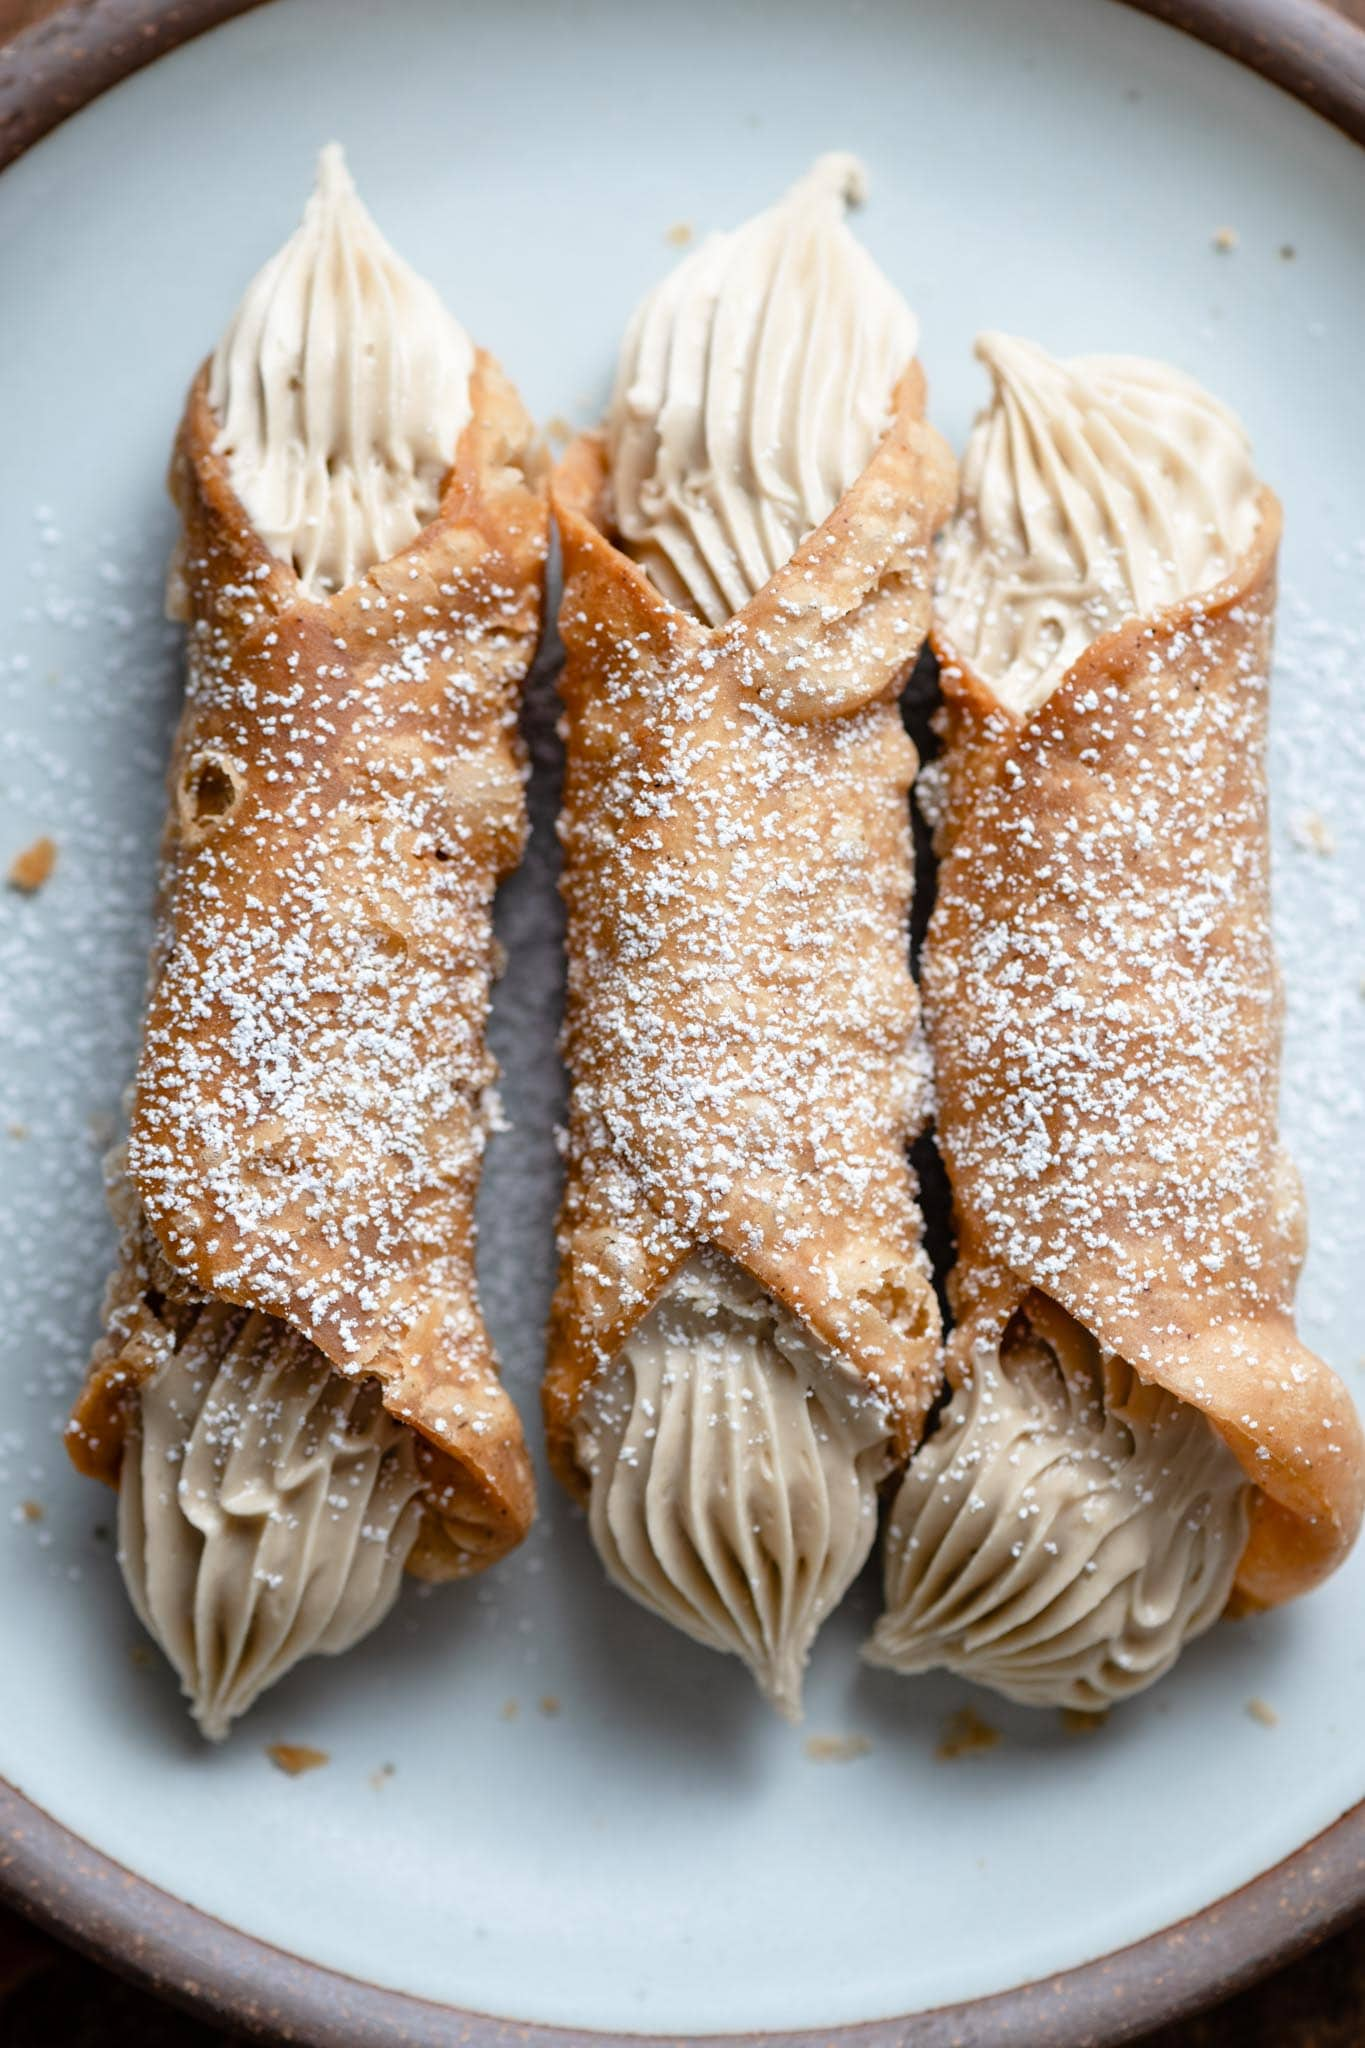 Homemade Cannoli with a Sunflower butter cream filling